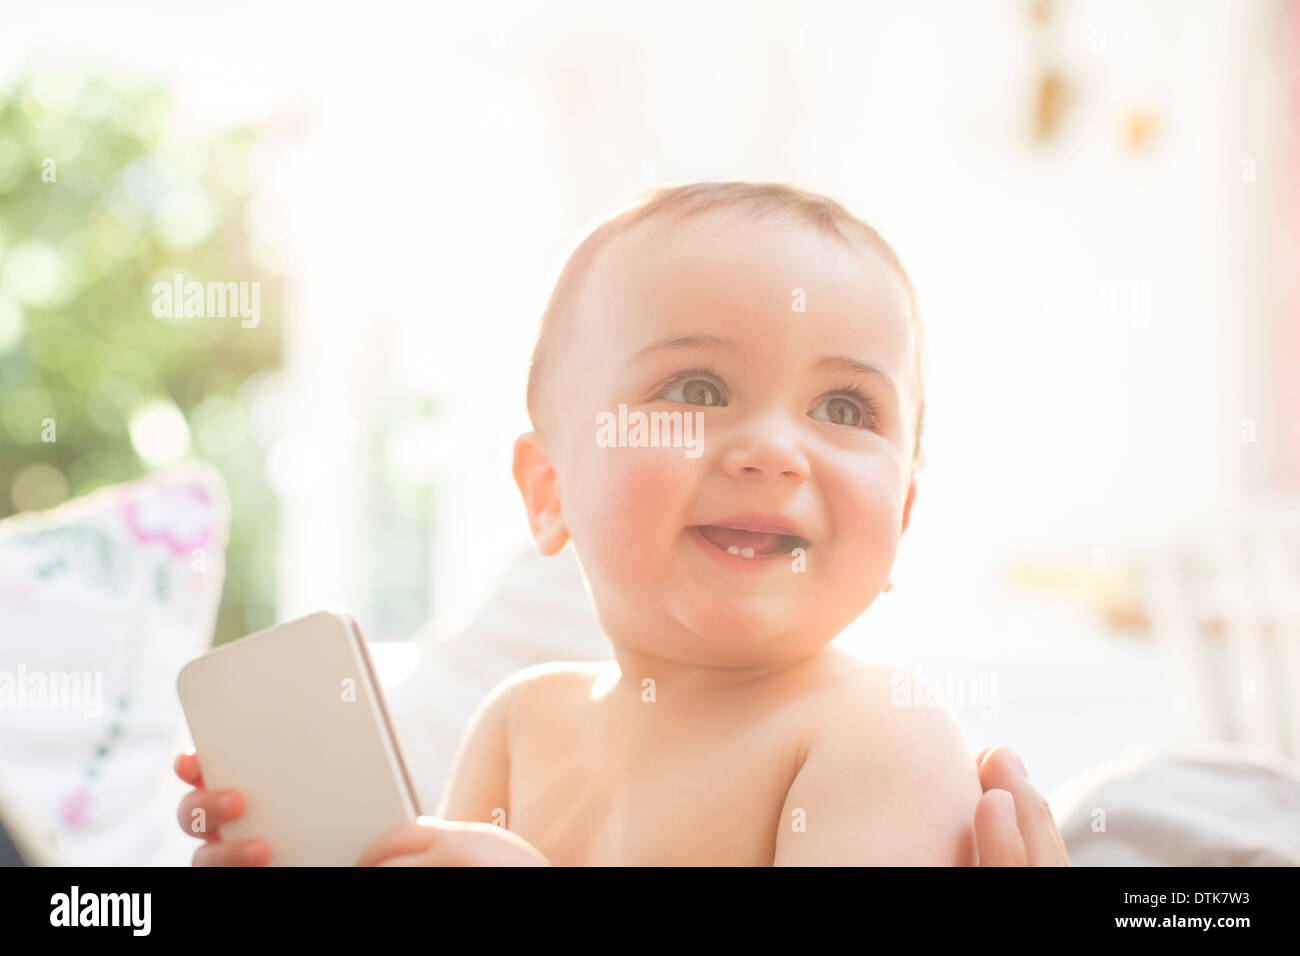 Baby boy playing with cell phone - Stock Image